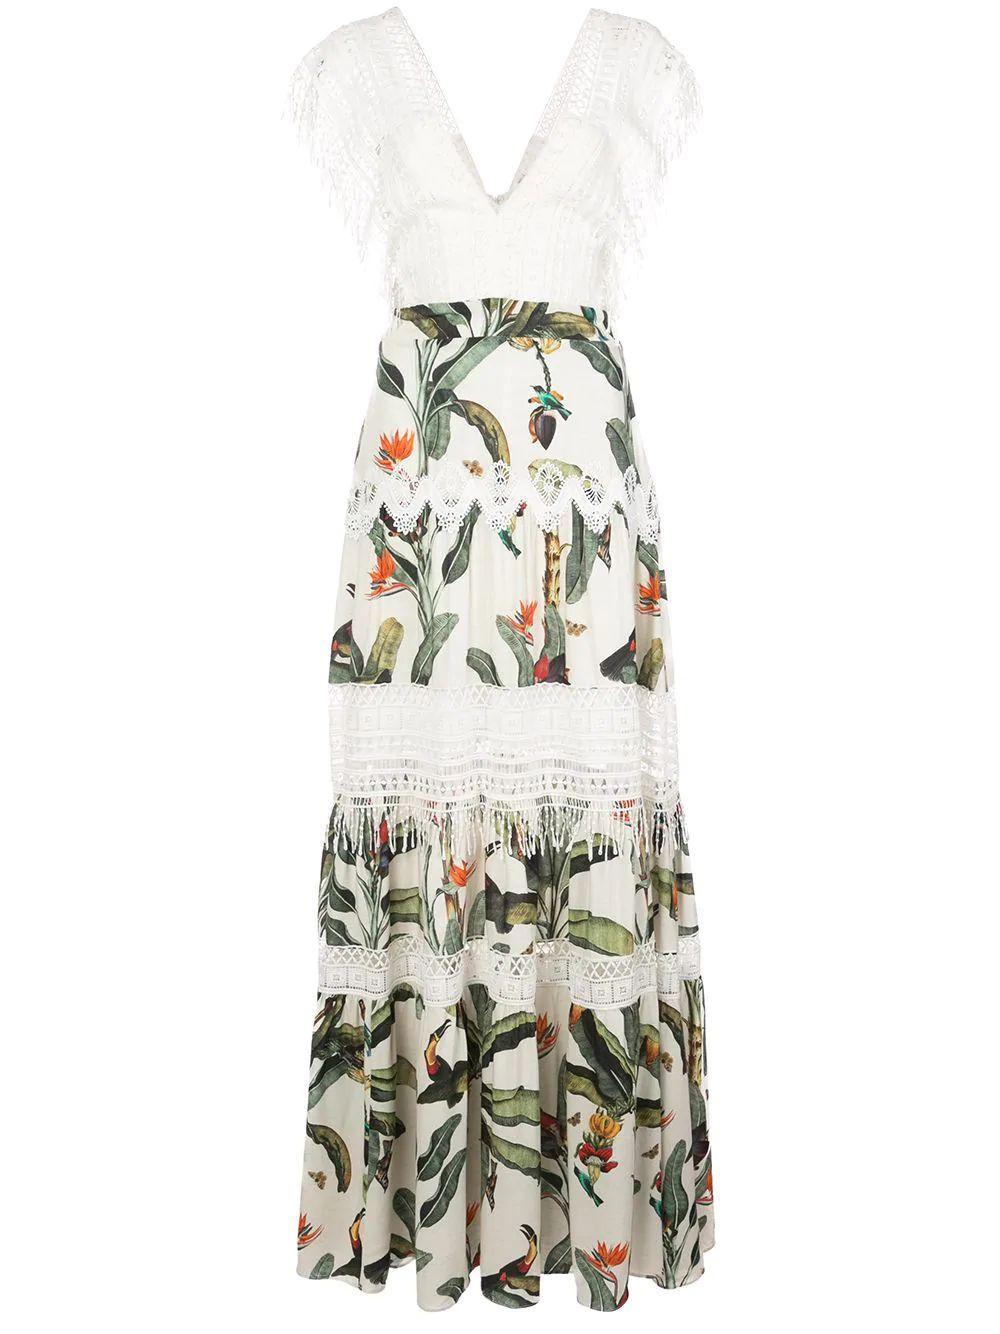 Tropical Print Lace Trim Dress